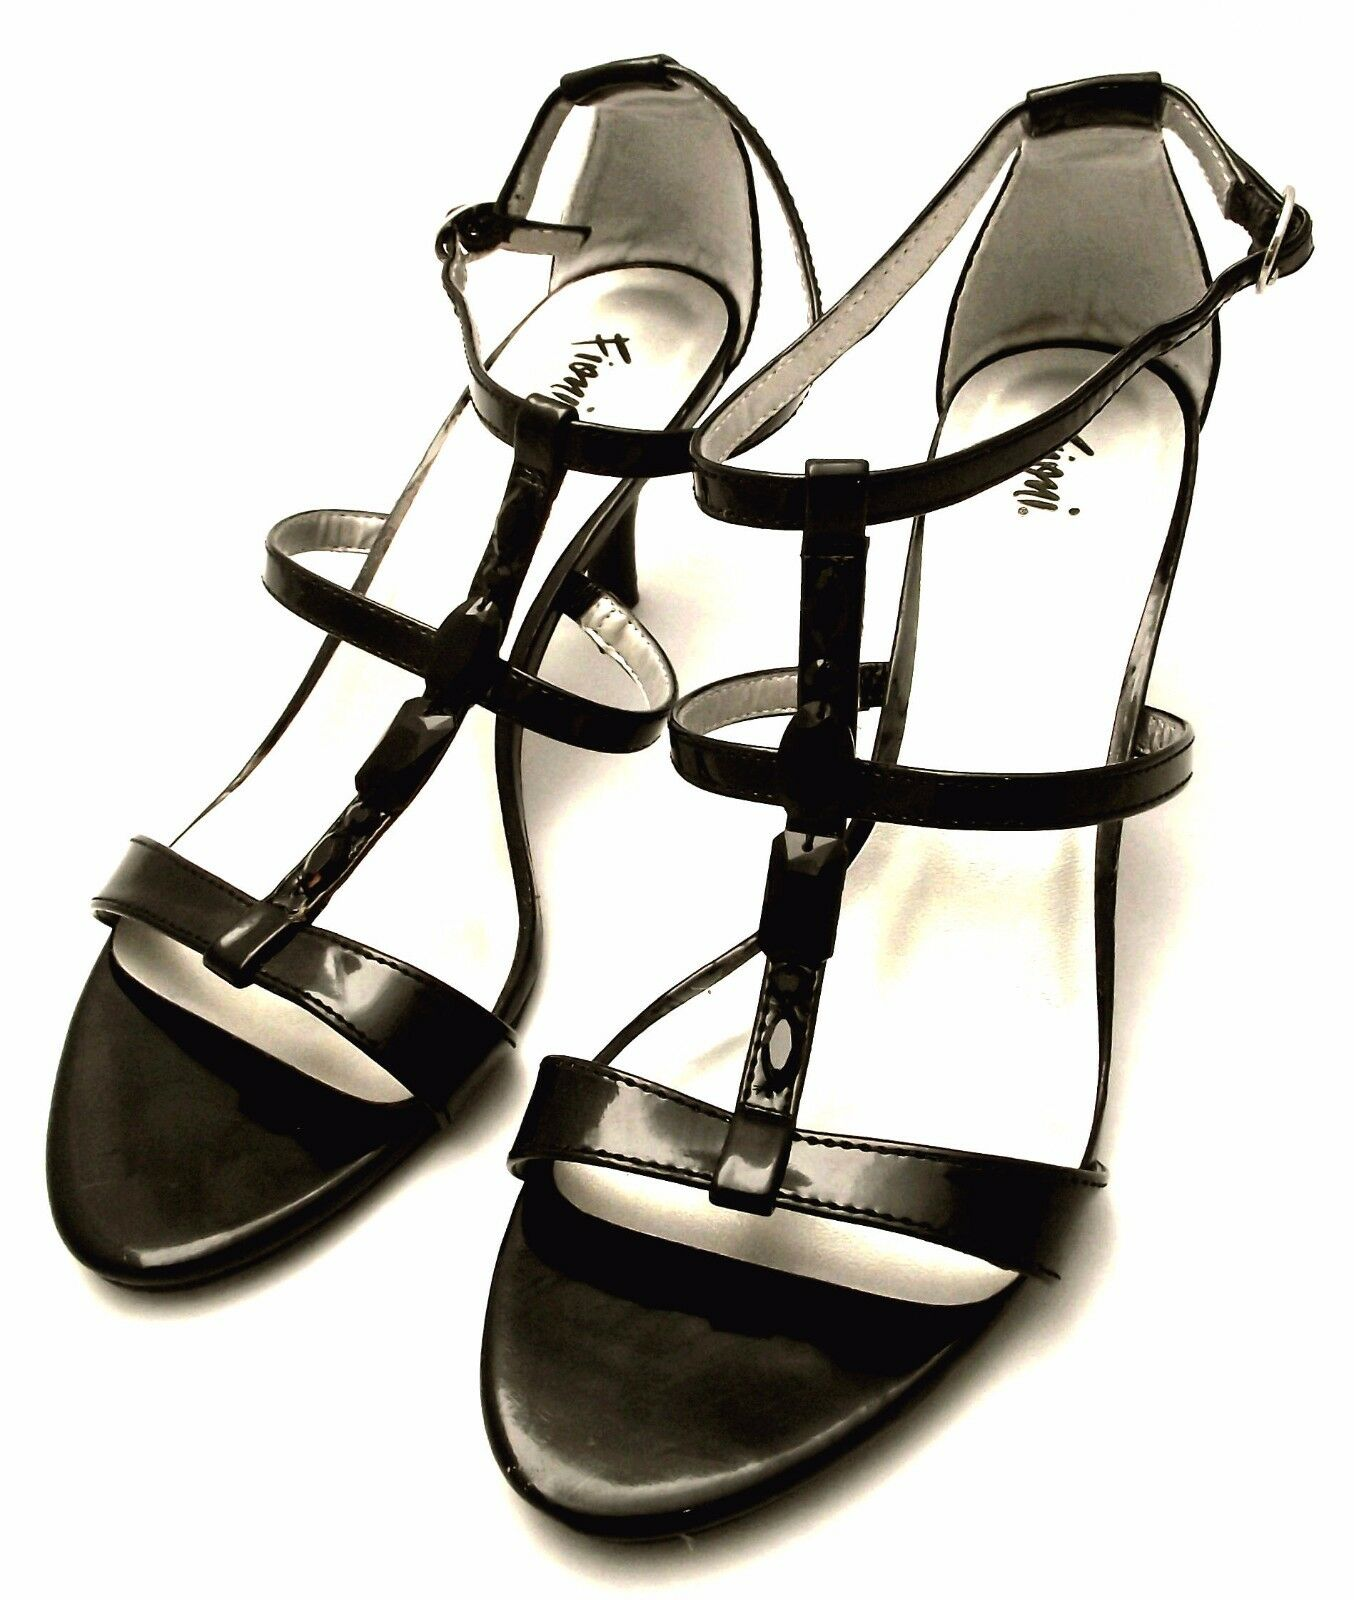 NWOB FIONI Black Patent Leather Heeled T-Strap Sandal 9.5B w/ Black Faux Jewels, 9.5B Sandal f581e3